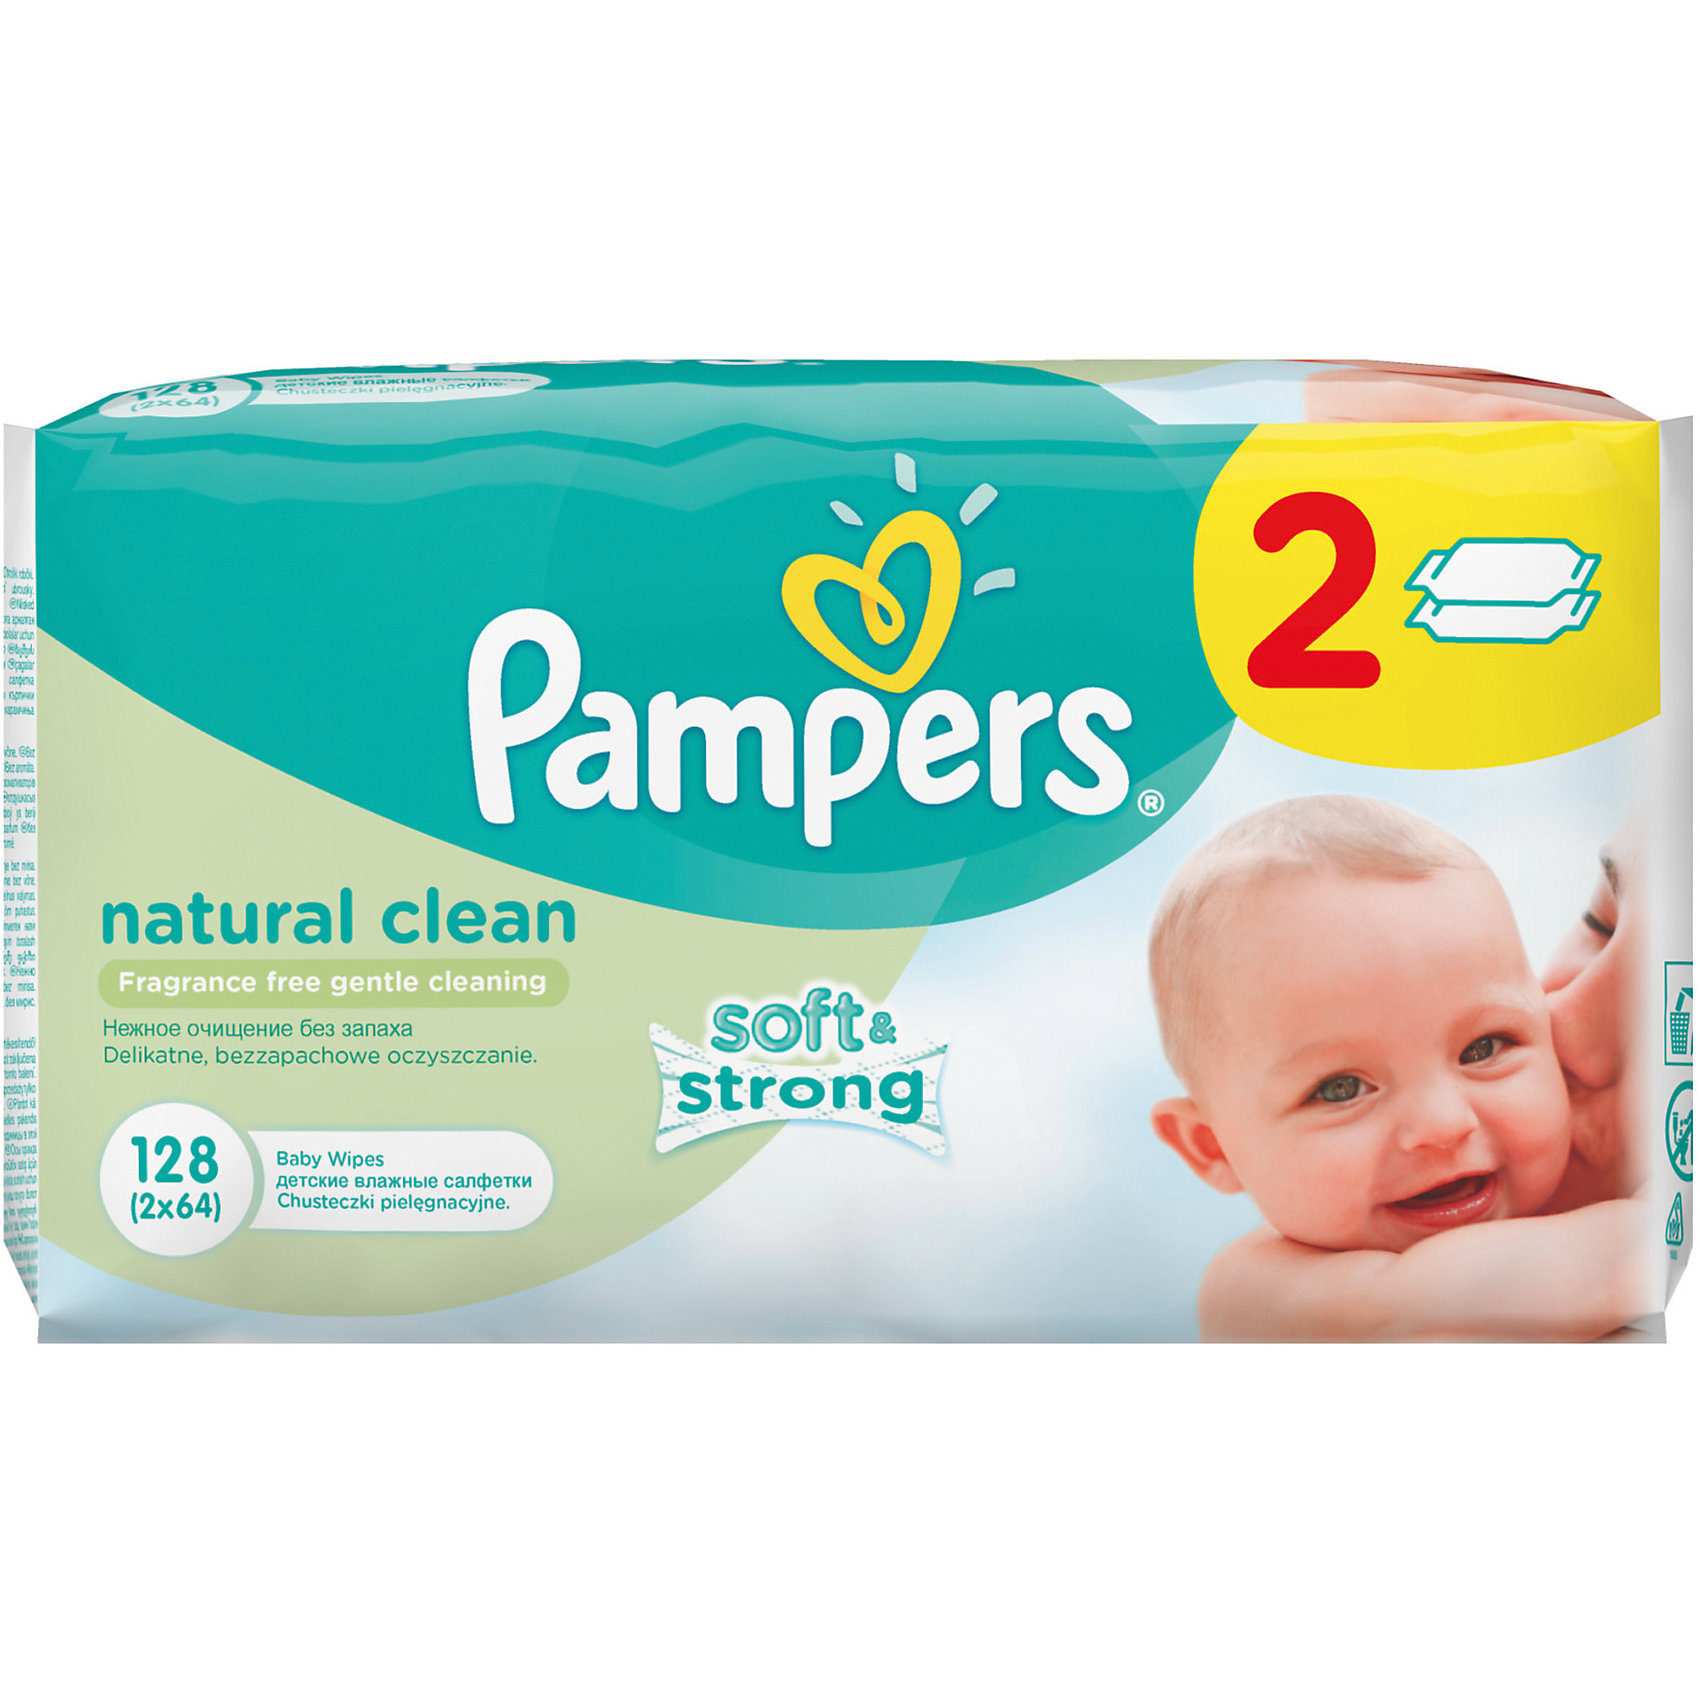 Салфетки детские влажные Pampers  Natural Clean,  128 шт., Pampers